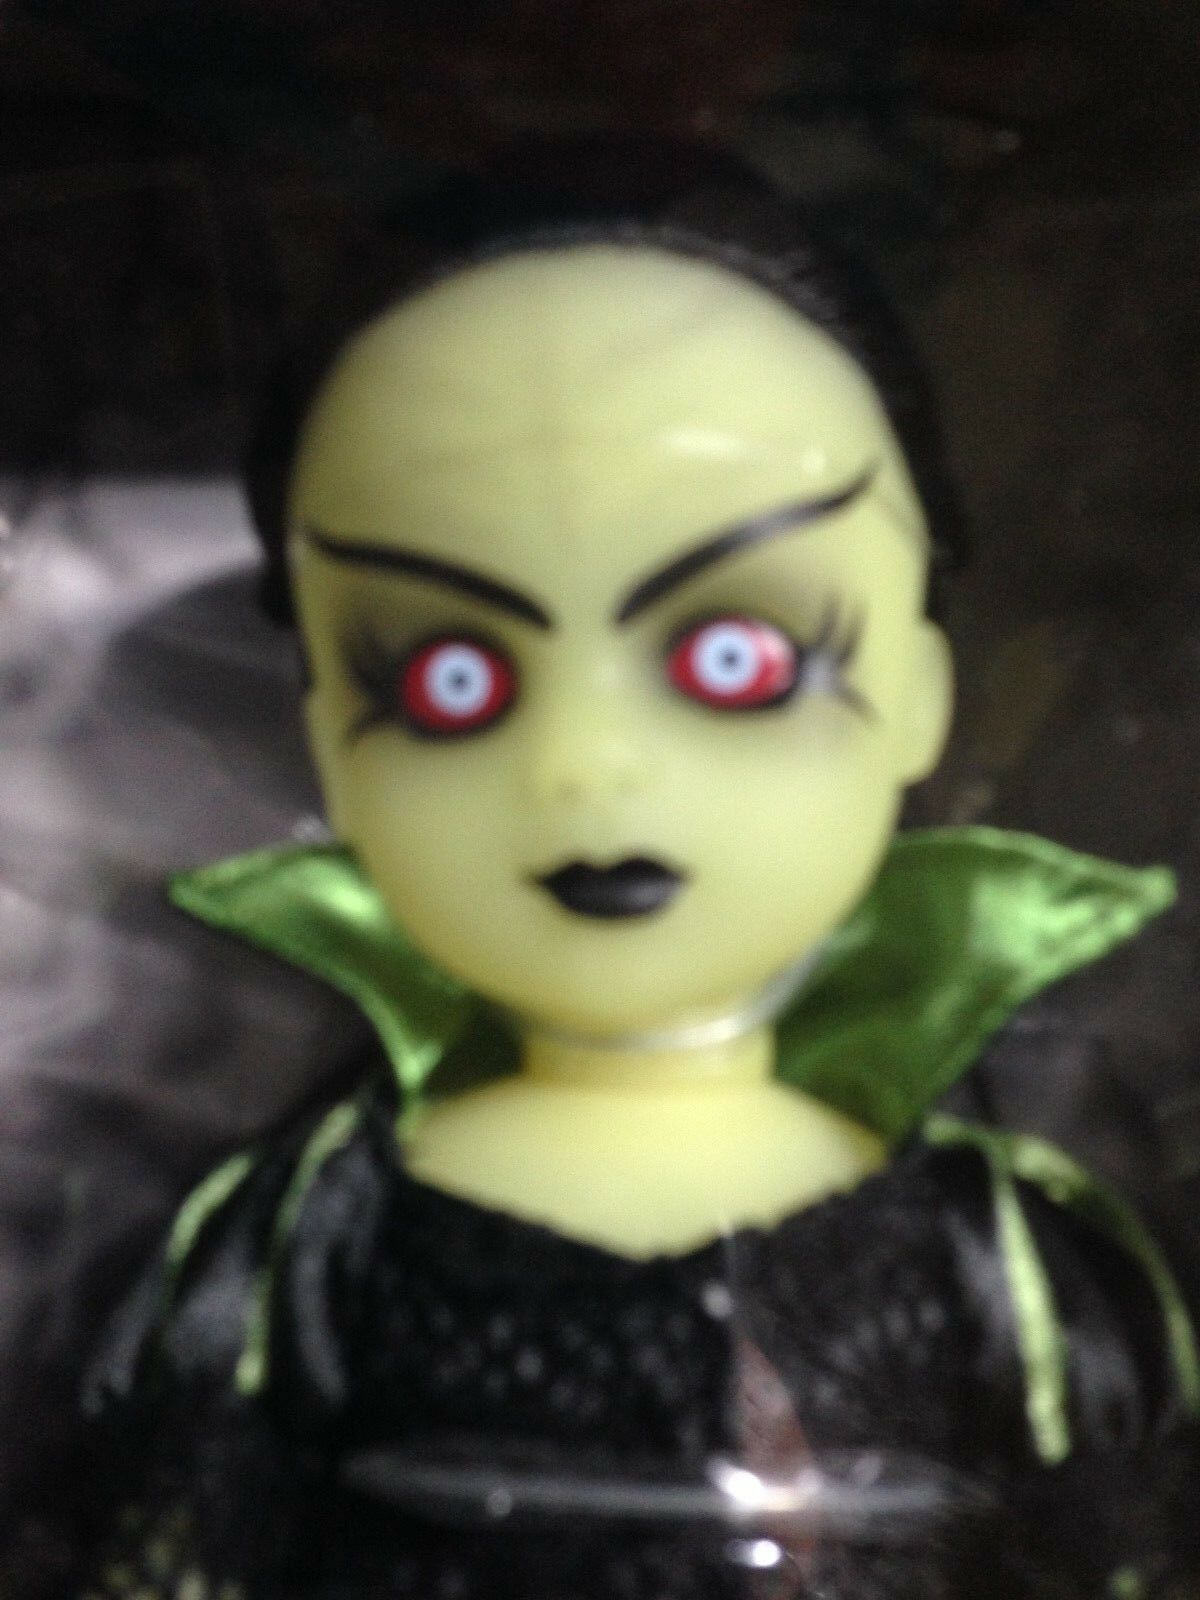 Living Dead Dolls Lost in Oz The Witch Glow in the Dark Variant HTF